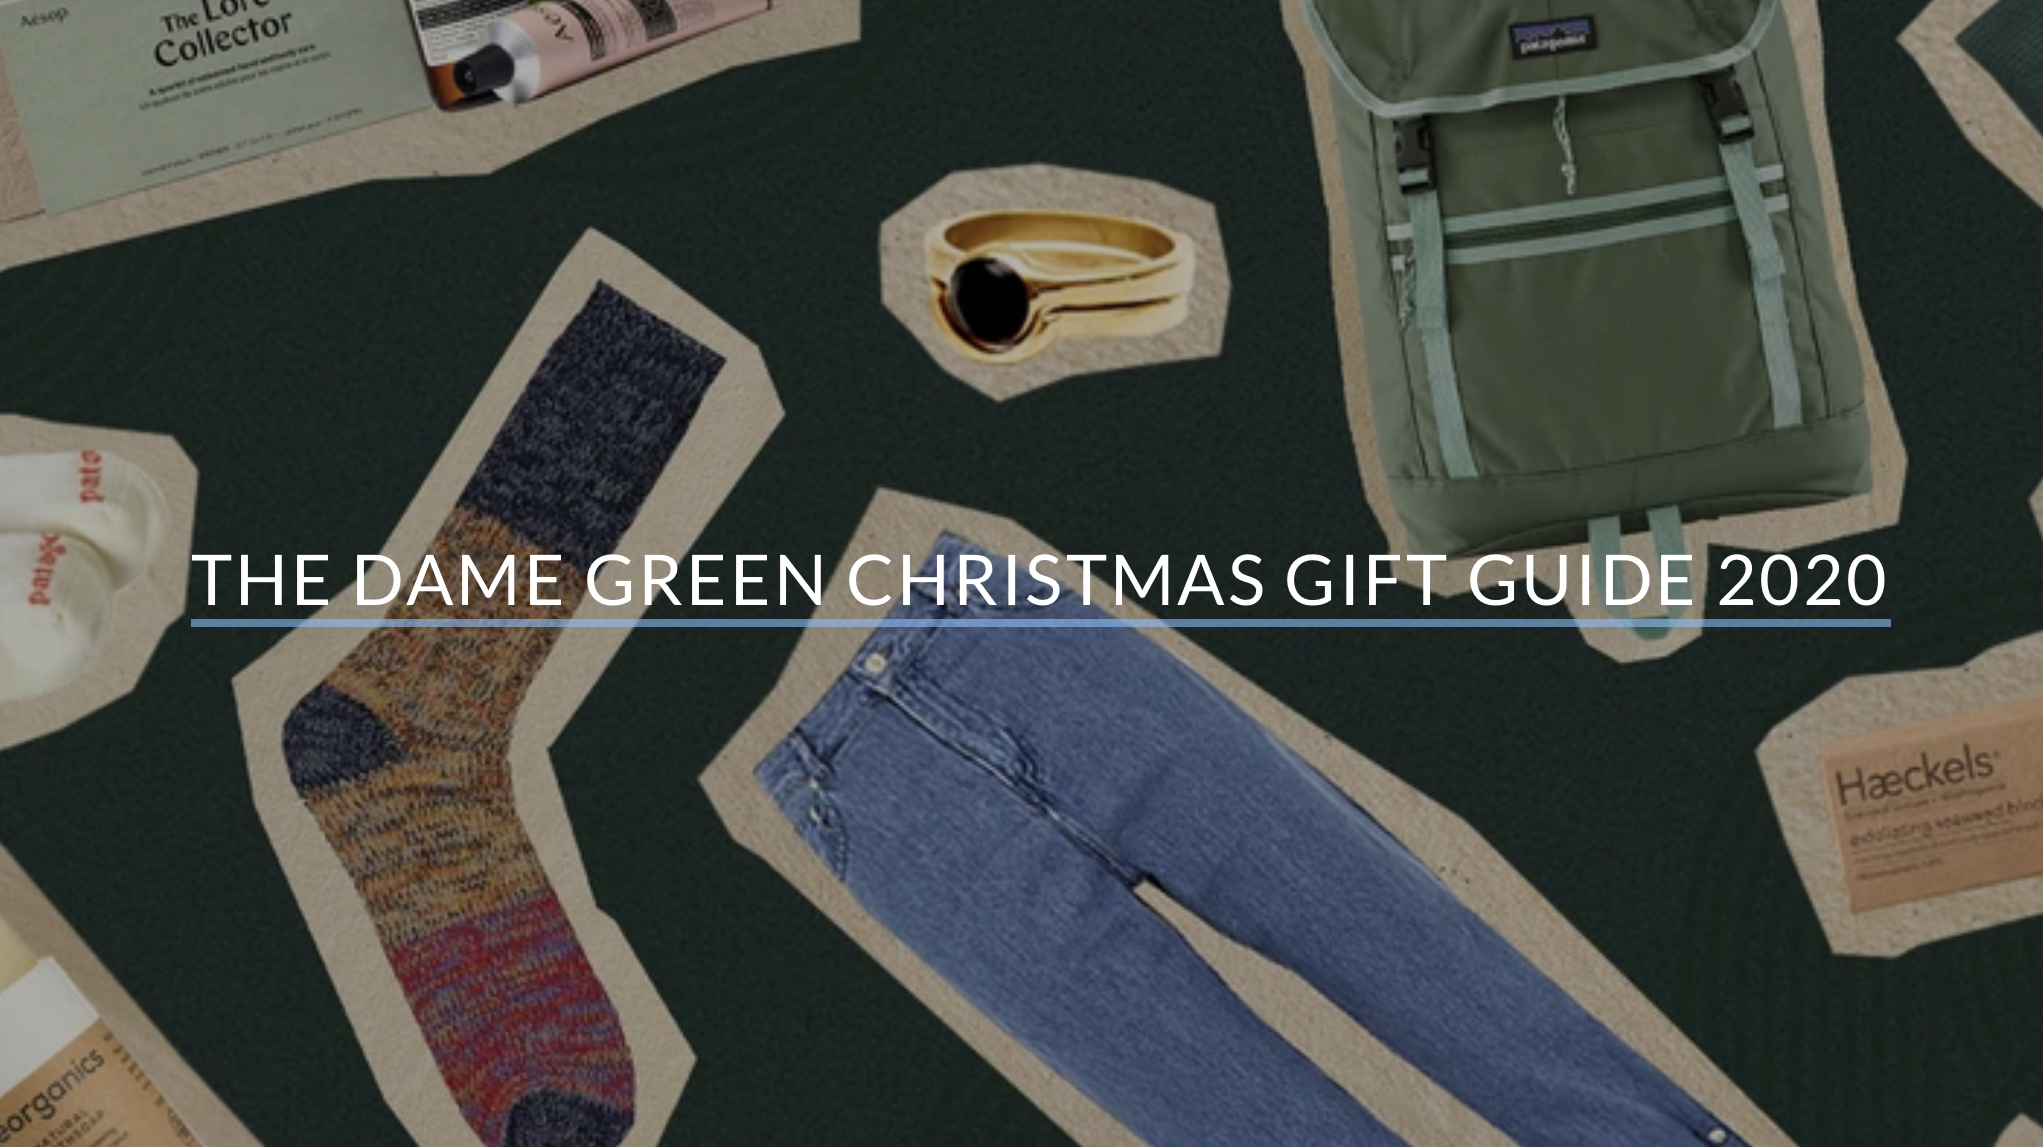 Dame, the ethical period product company, has created its own Christmas Gift Guide - and Noughty is on it!